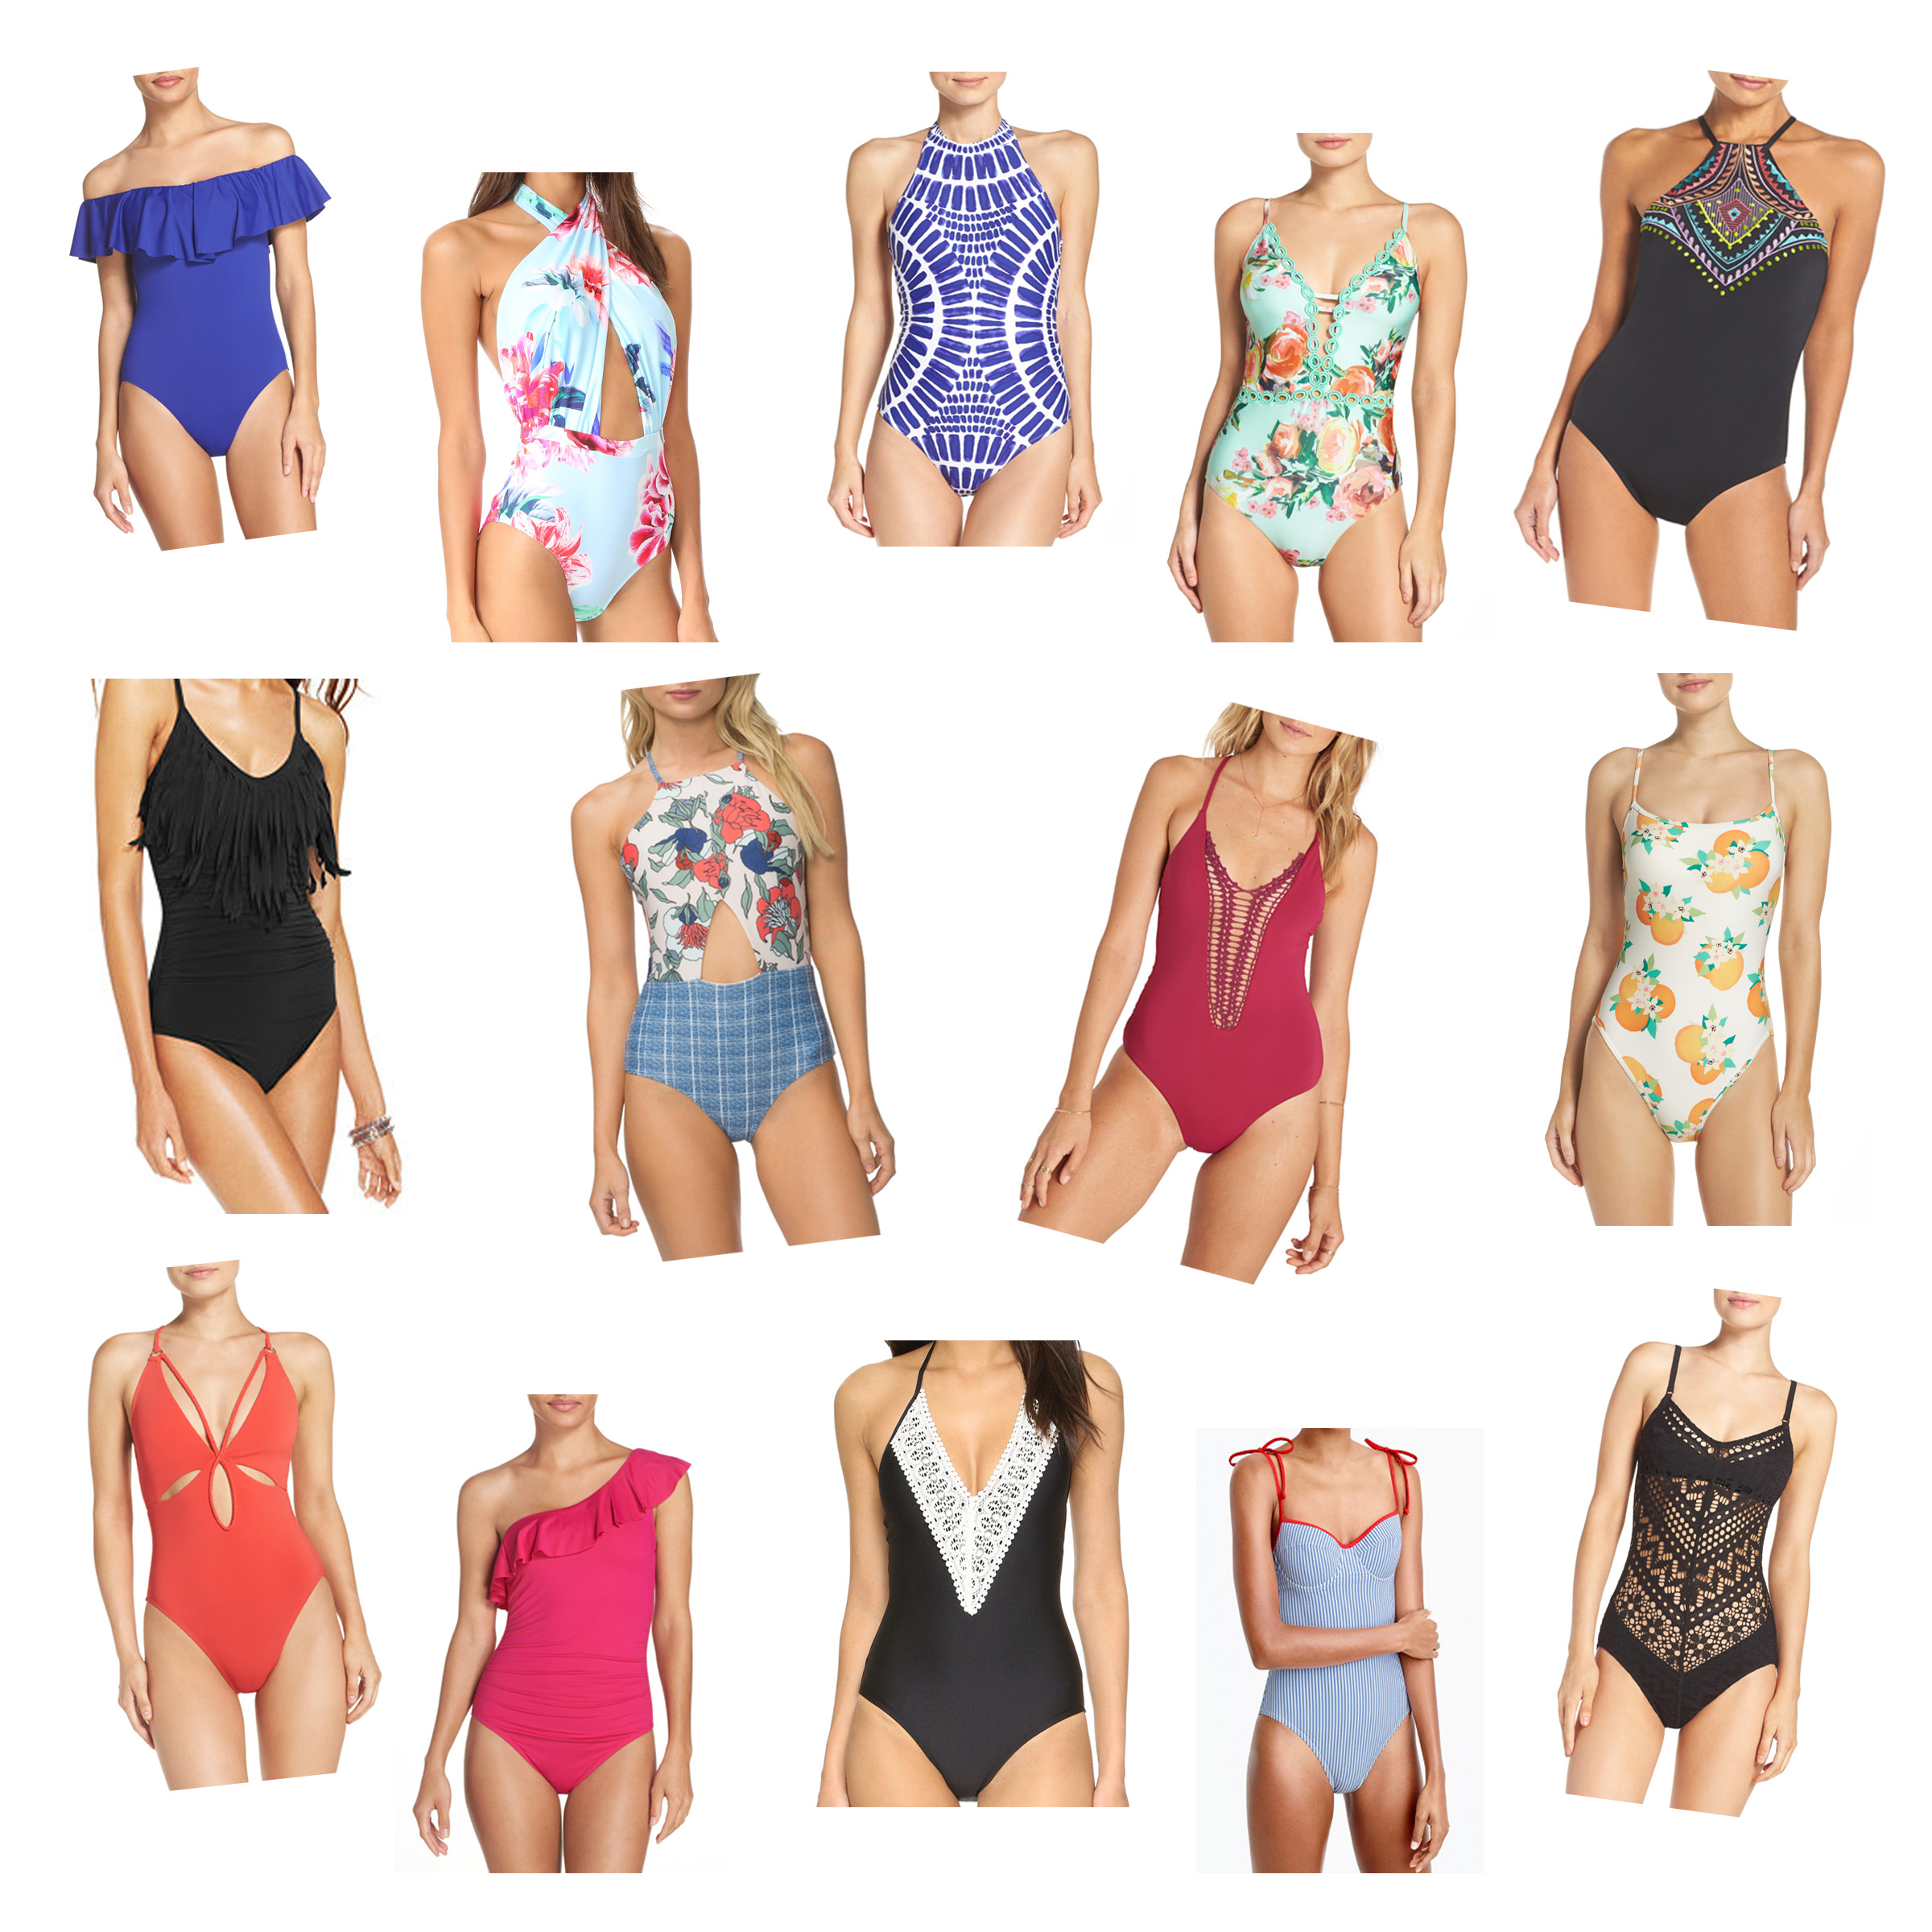 My Top 15 Favorite Cute & Stylish One-Piece Swimsuits